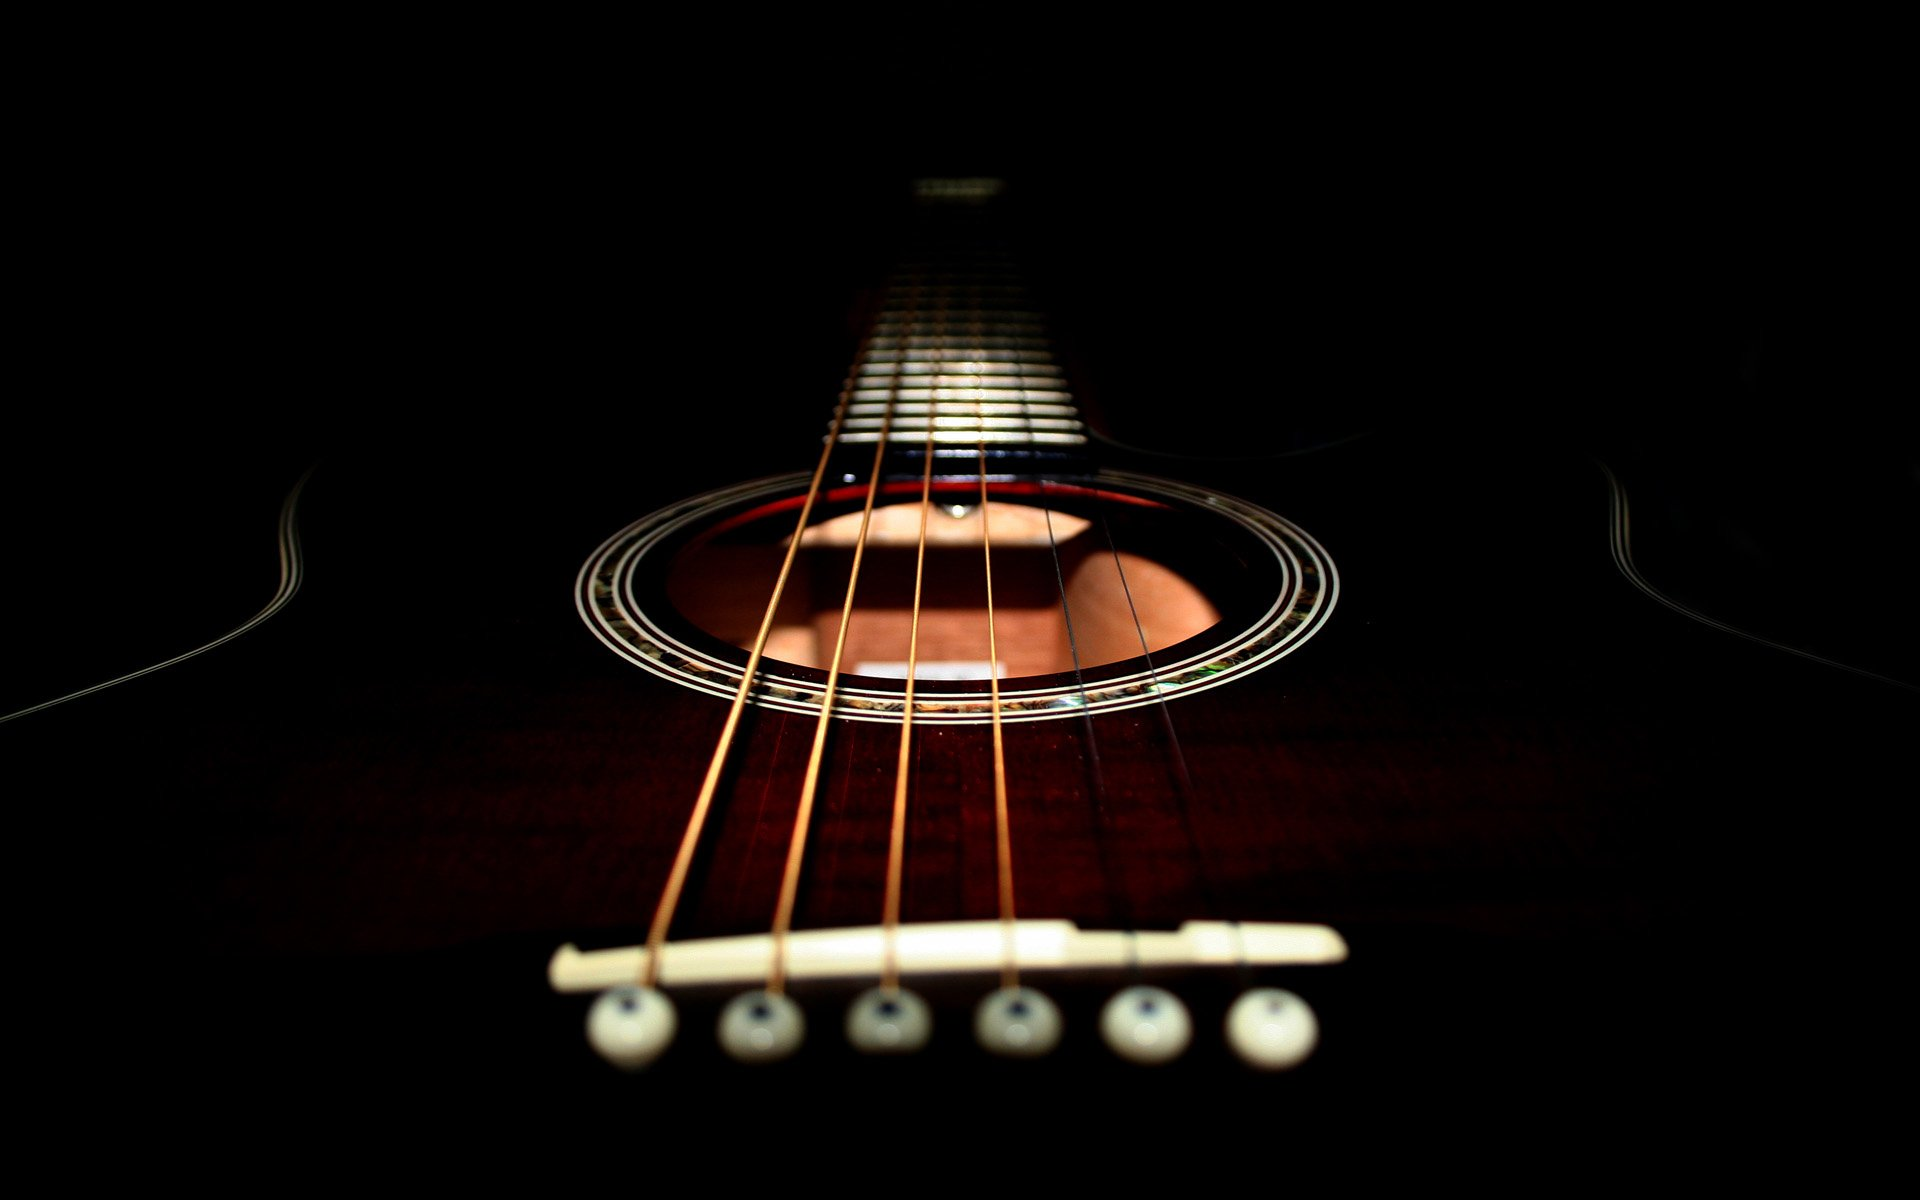 705 Guitar HD Wallpapers | Backgrounds - Wallpaper Abyss